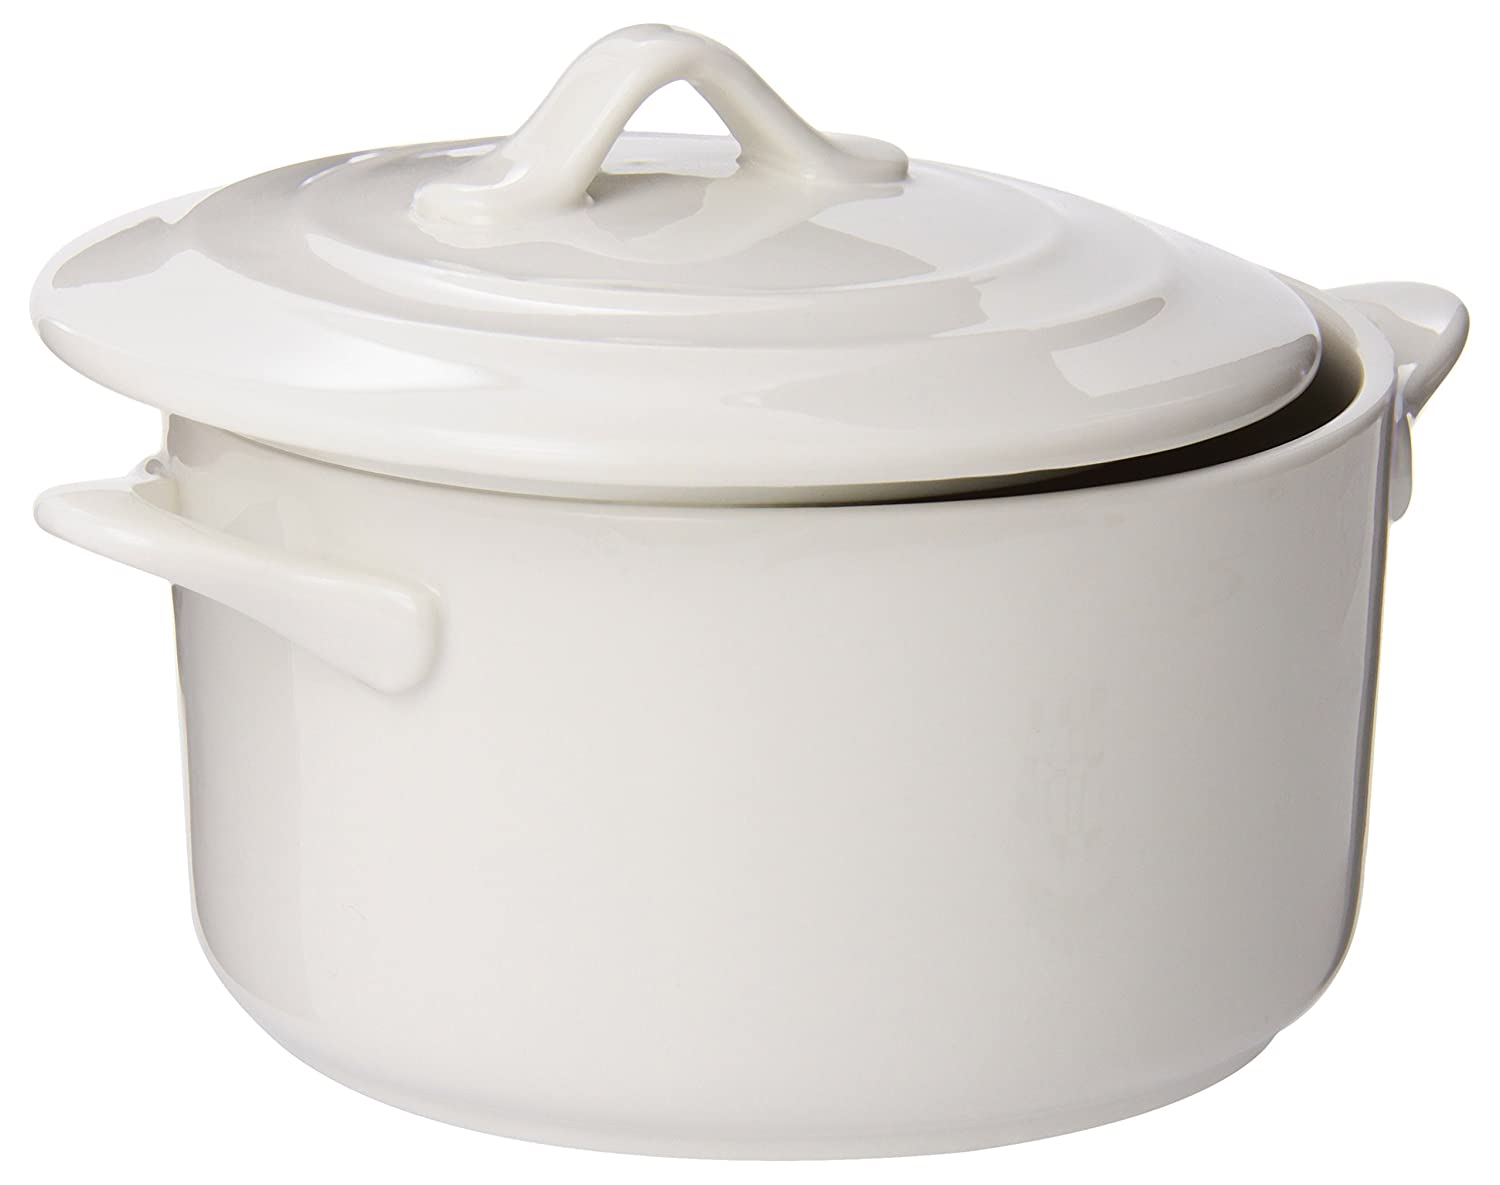 Maxwell and Williams TP72012 20.5-Ounce Basics Oven Chef Round Casserole, Mini, White Fitz and Floyd